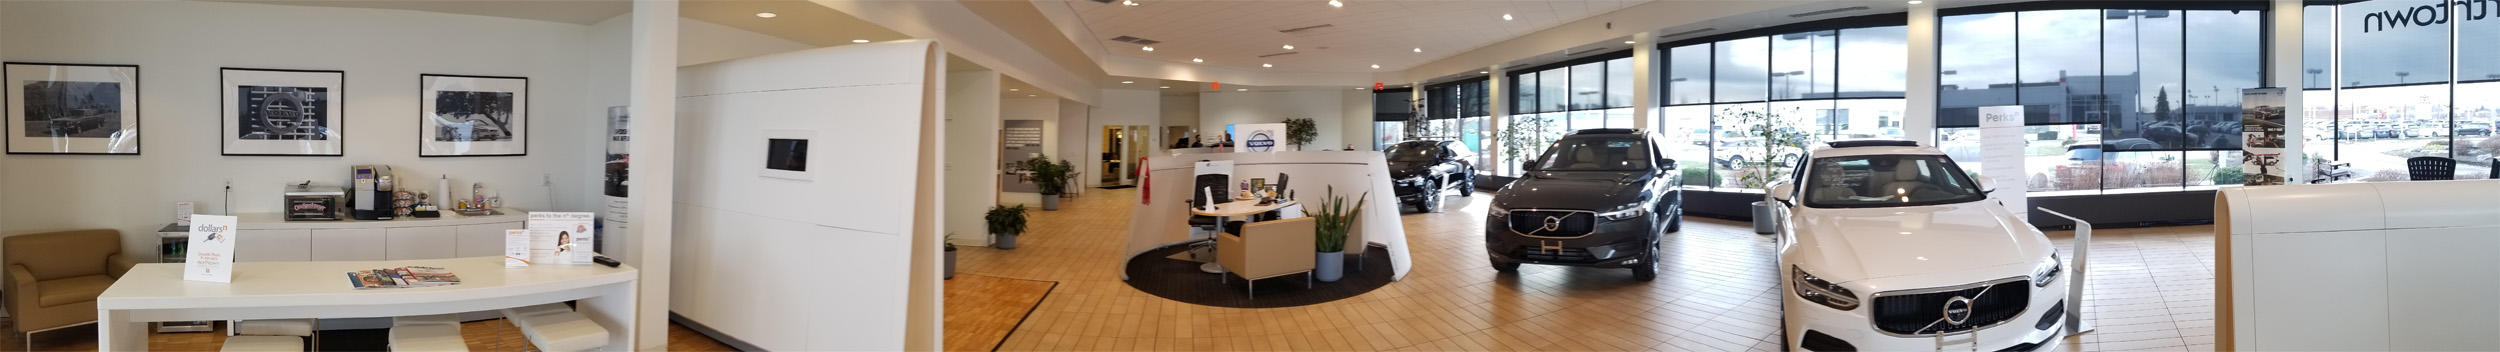 Northtown Volvo Cars Buffalo image 1